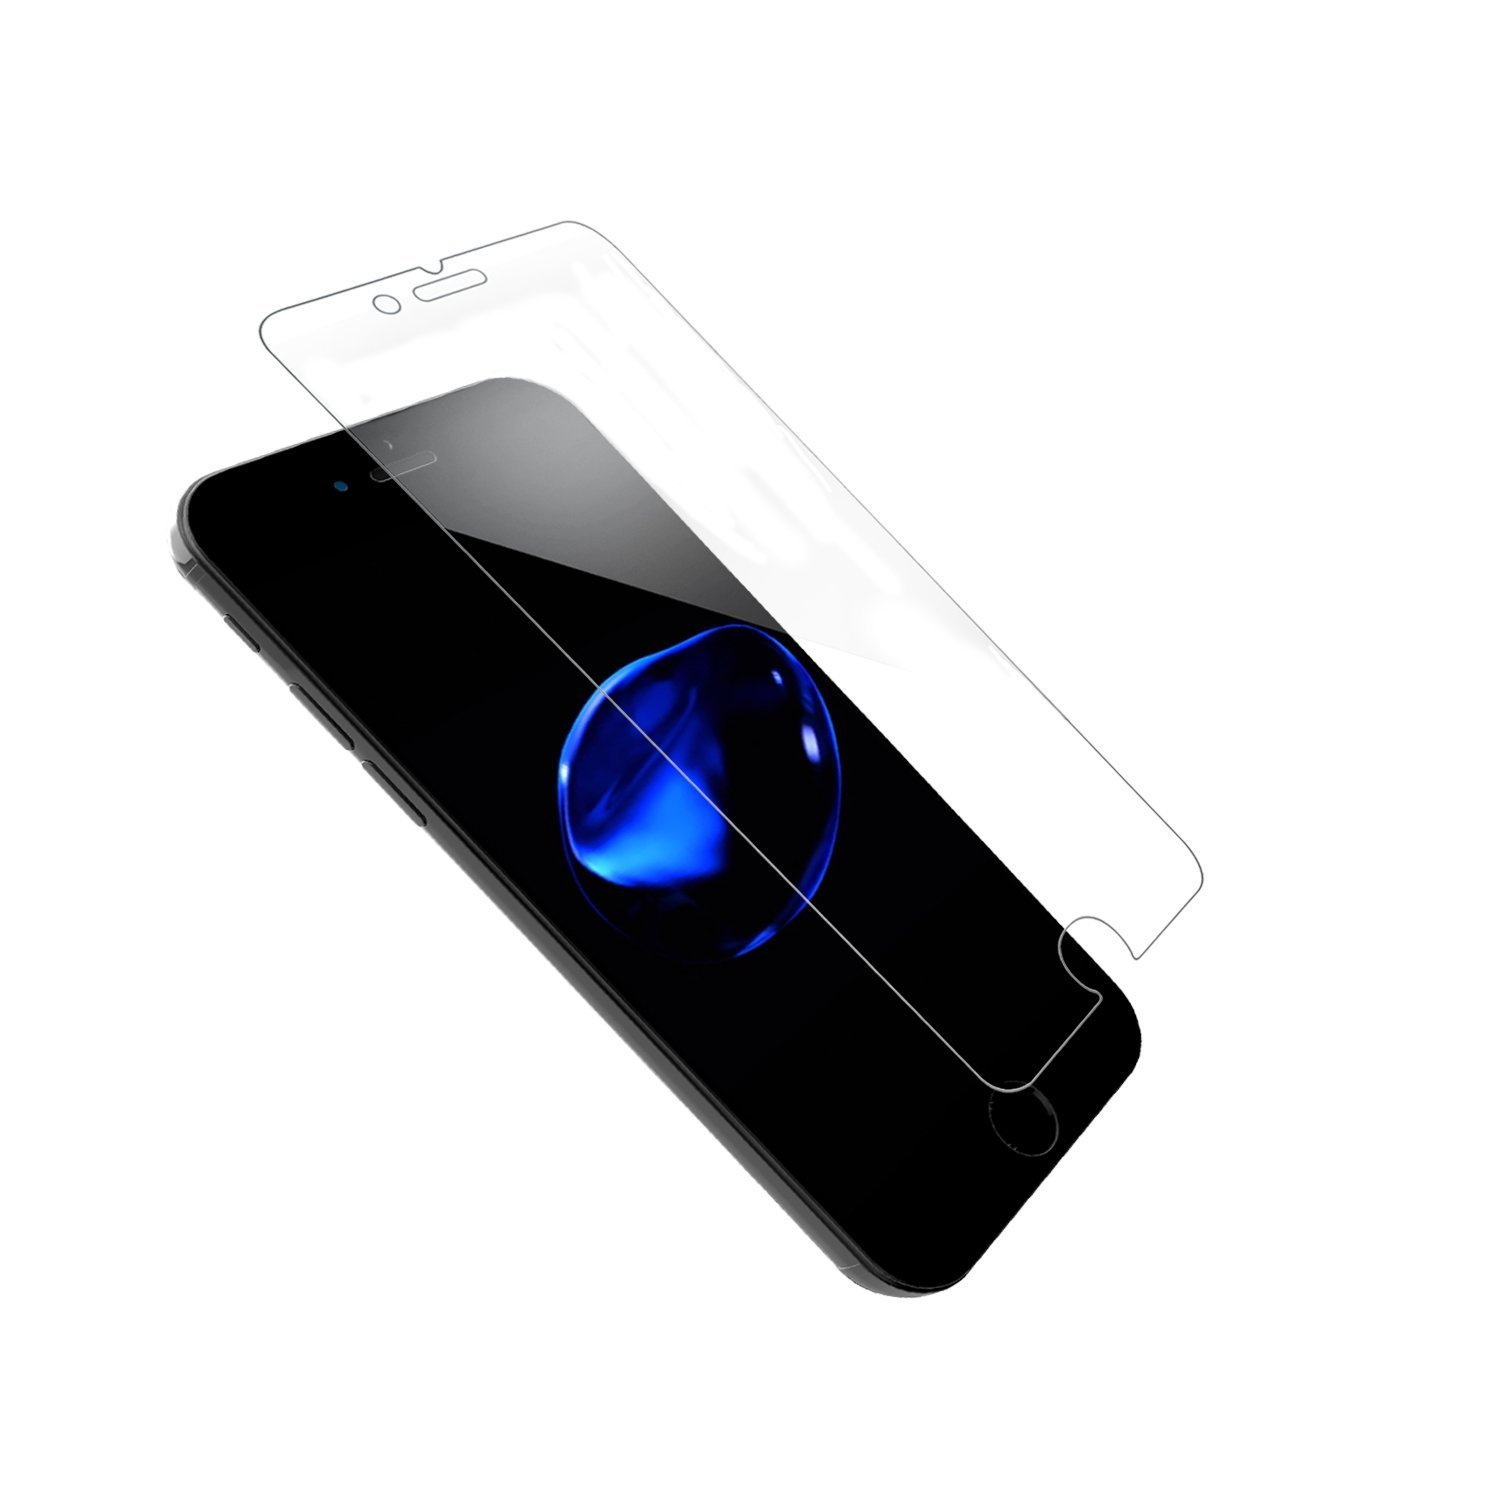 Ultra Clear iPhone 7 Plus Screen Protector SOWTECH 2 Pack Premium Tempered Glass with Scratch Proof HD iPhone 8 Plus Protective Screen Cover with Anti Bubble - Clear